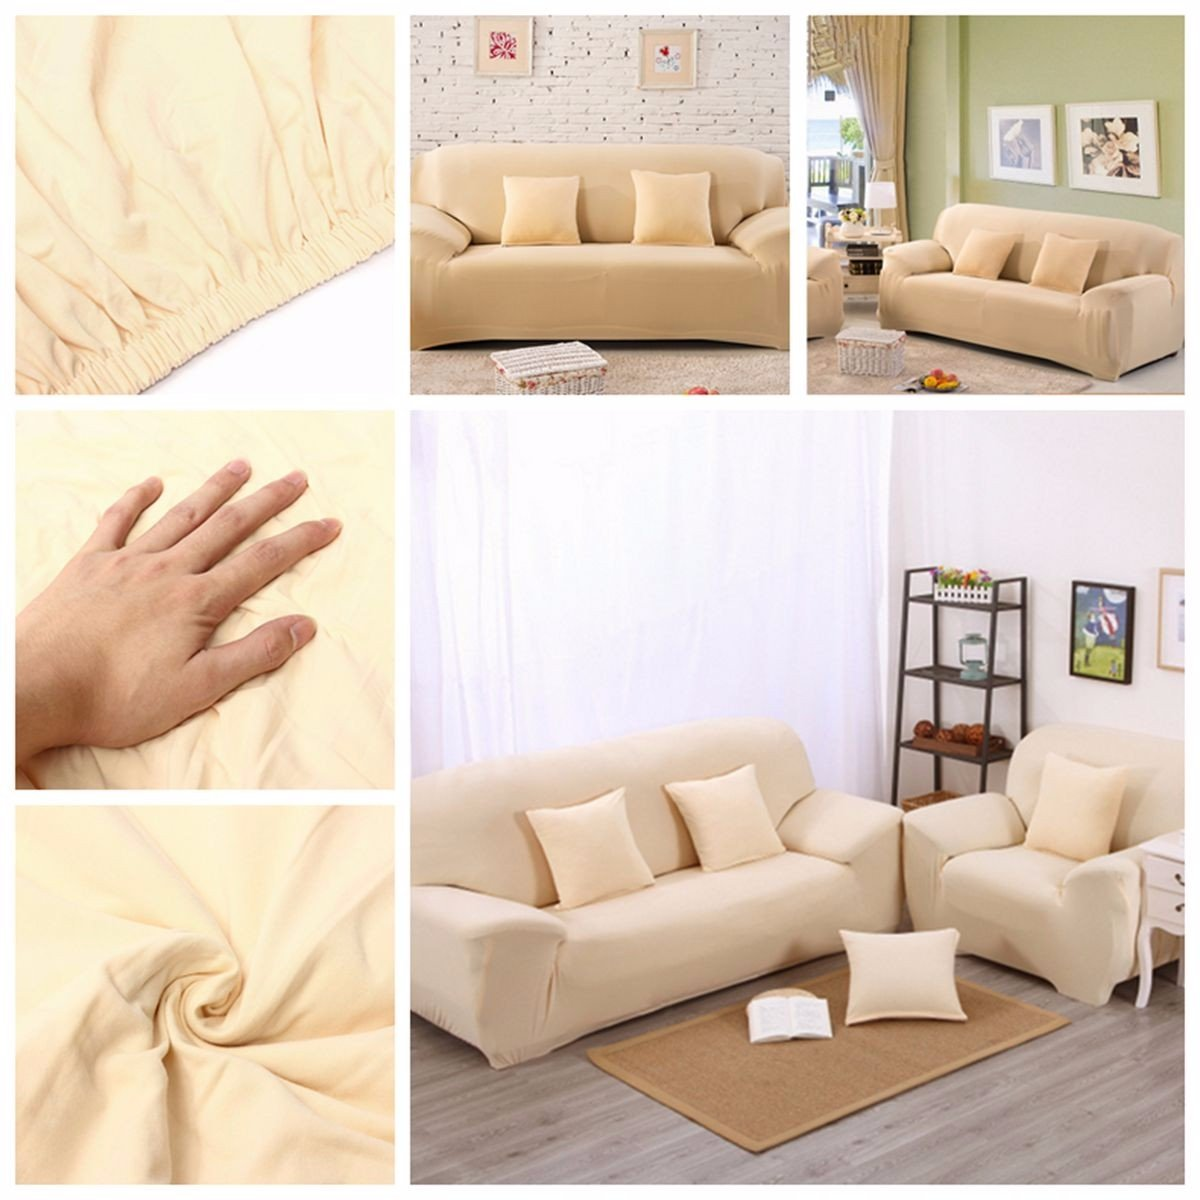 Sectional Corner Couch Three Seat Stretch Elastic Sofa Slipcover Pet Dog Sectional Corner Sofa Covers Furniture Protector